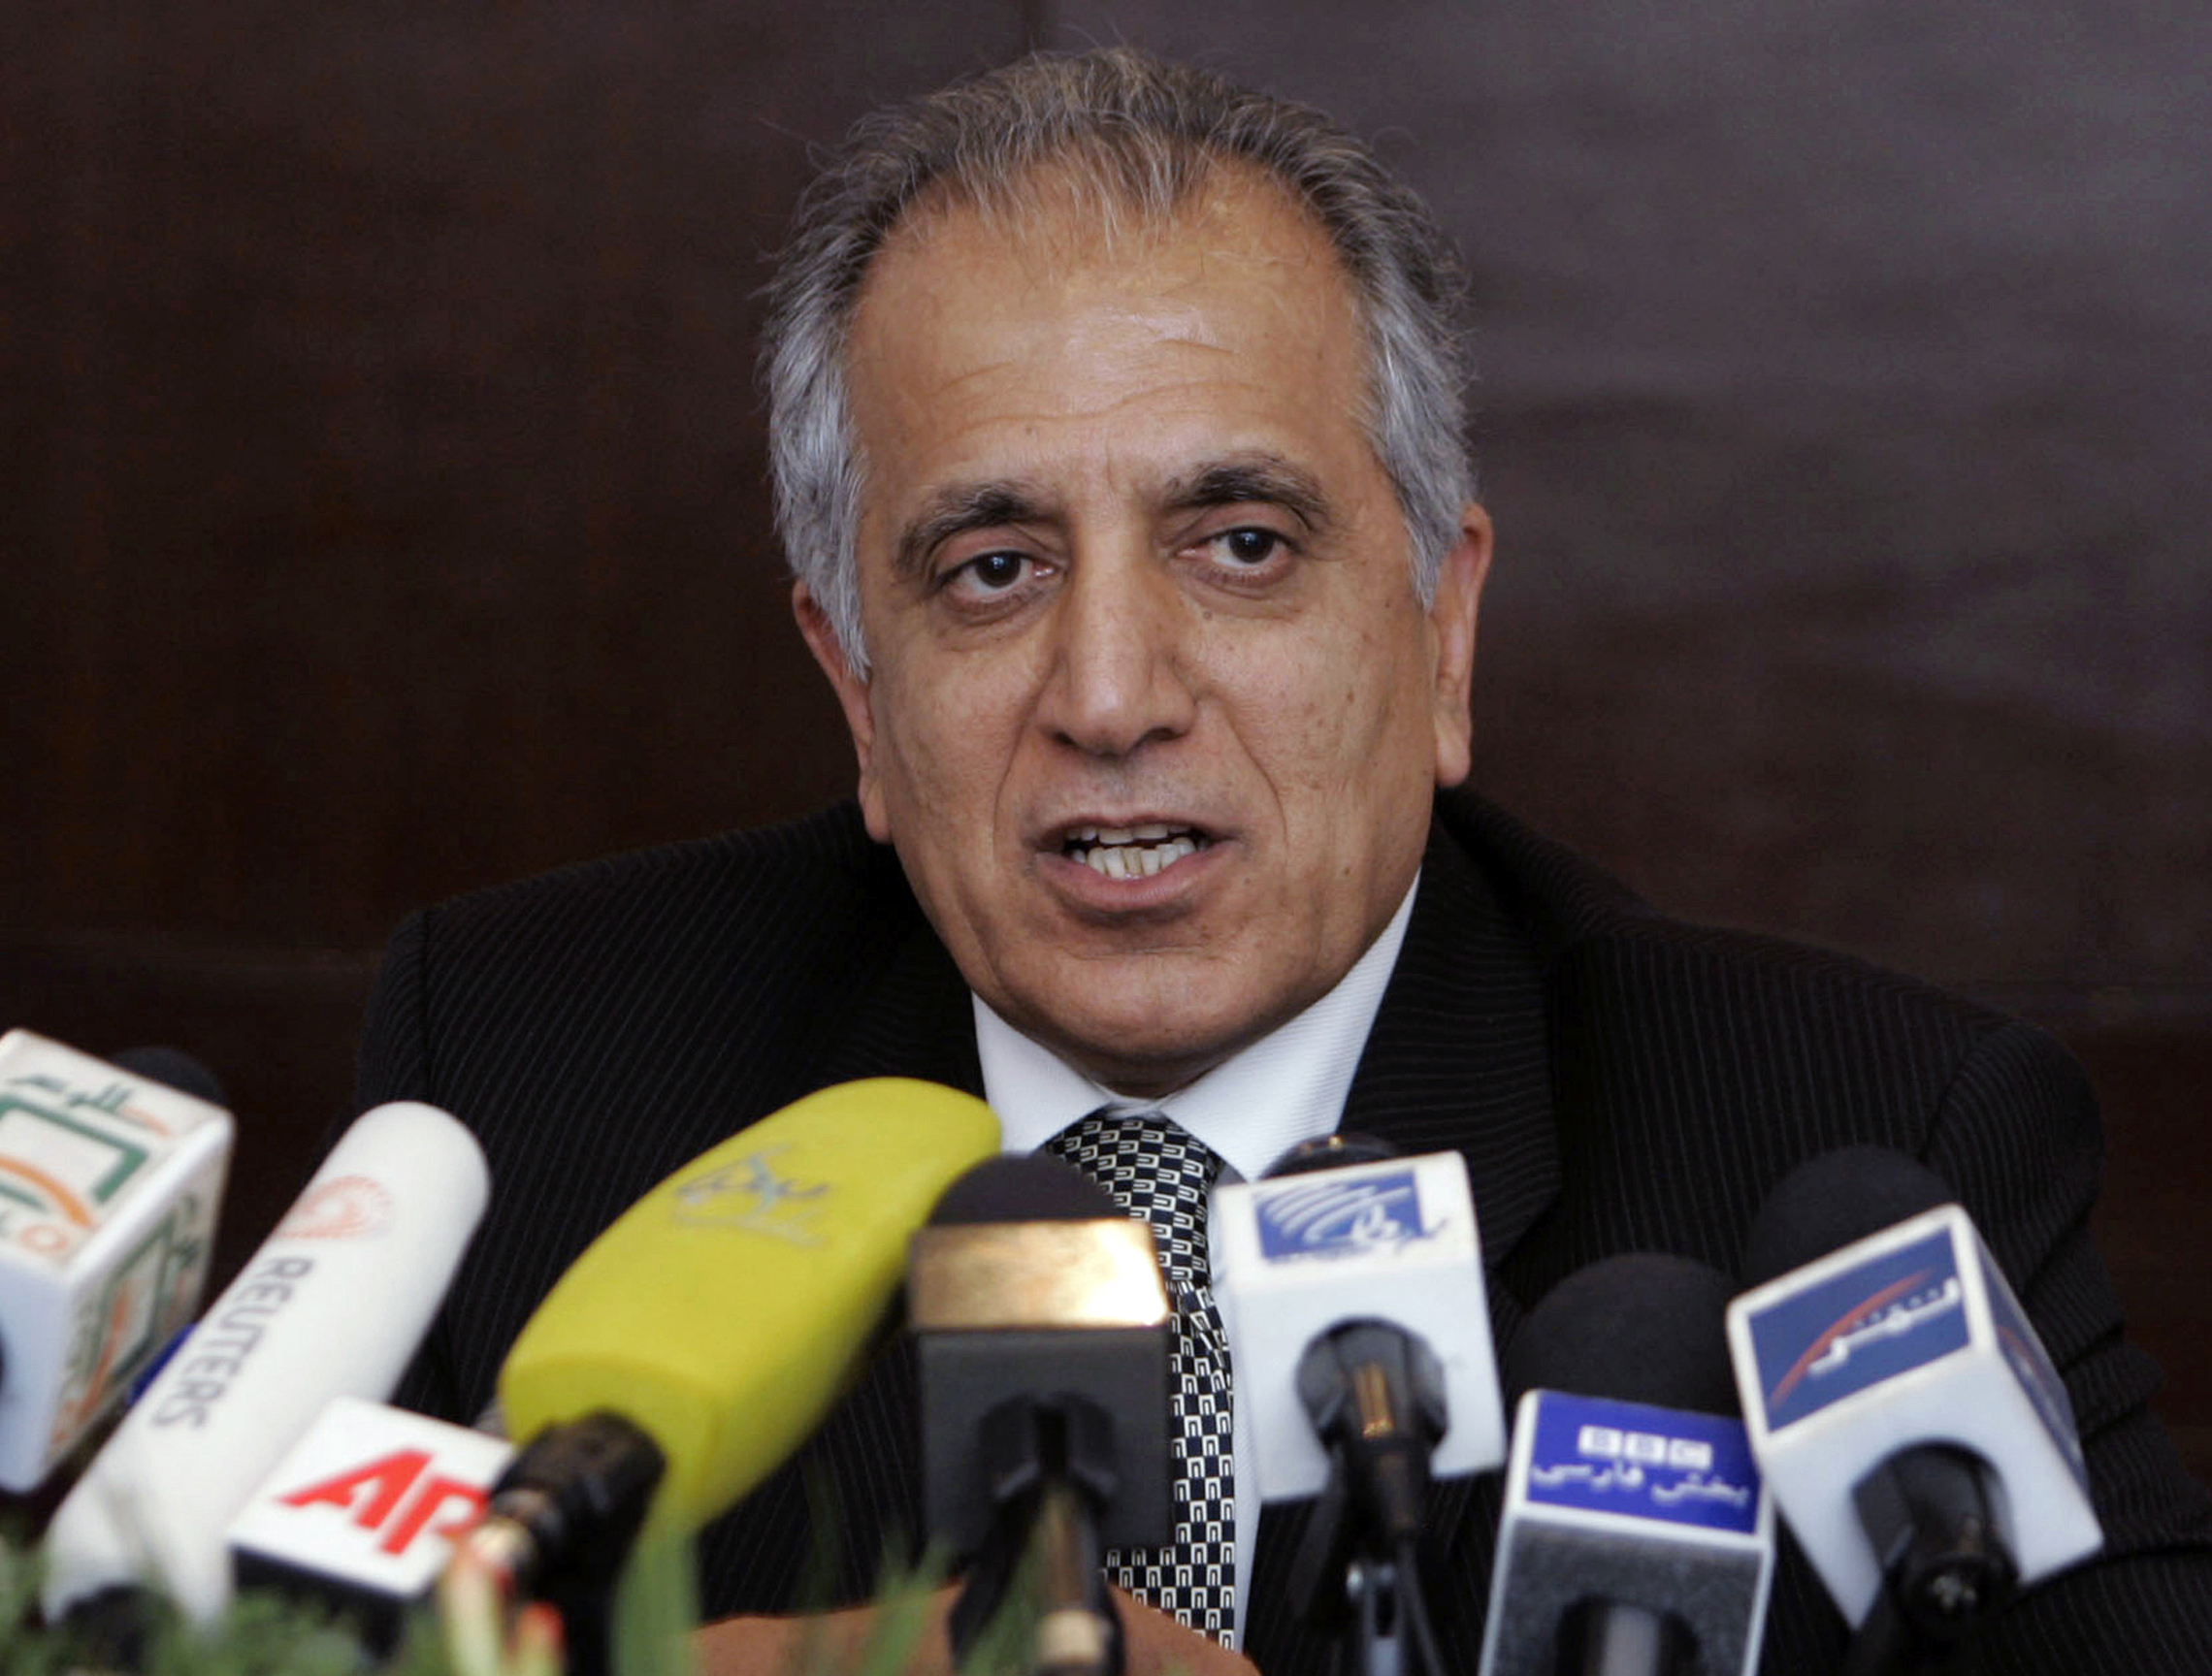 FILE - Zalmay Khalilzad, special adviser on reconciliation, speaks during a news conference in Kabul, Afghanistan, March 13, 2009. Abdul Ghani Baradar, a co-founder of the Taliban has been appointed head of the group's political office in Qatar as ...